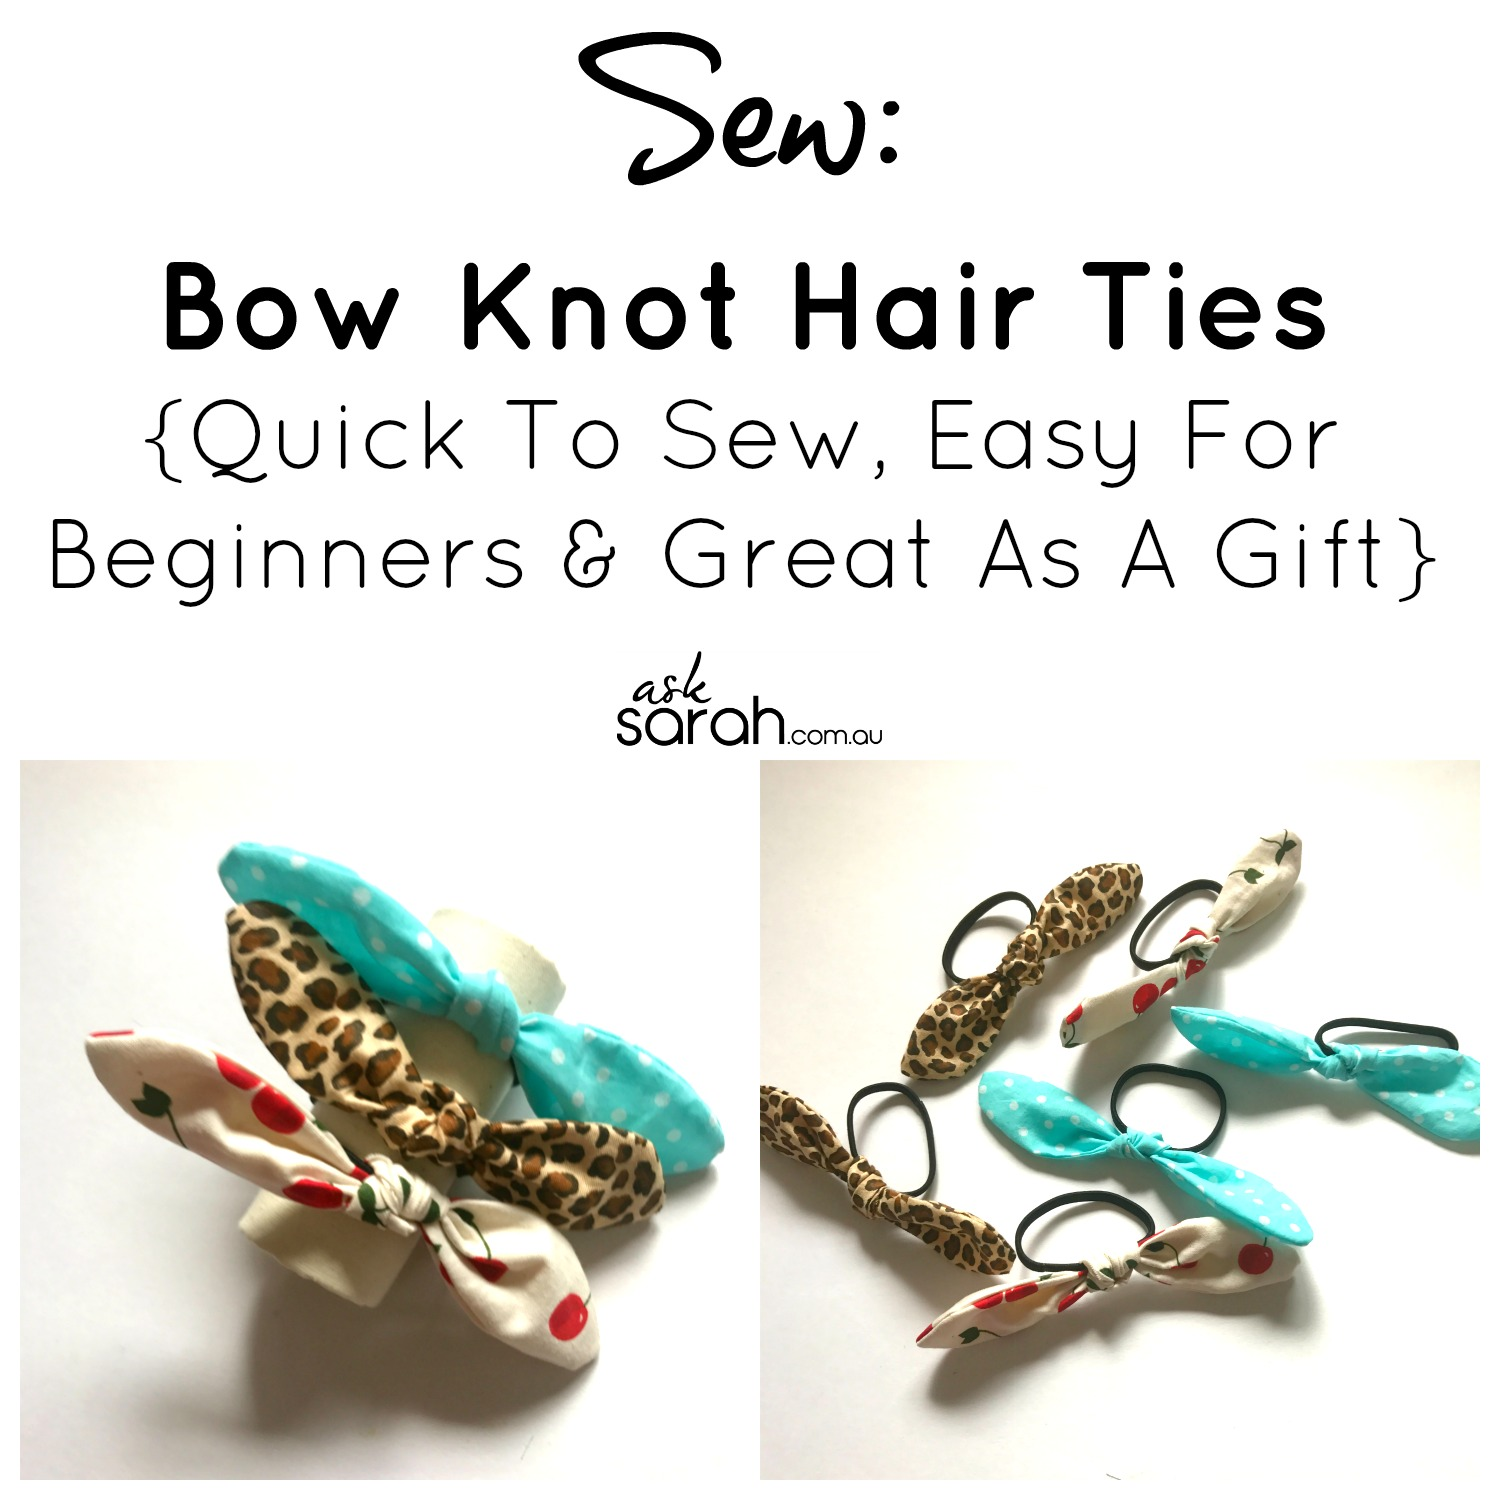 sew-bow-knot-hair-ties-quick-to-sew-easy-for-beginners-great-as-a-gift